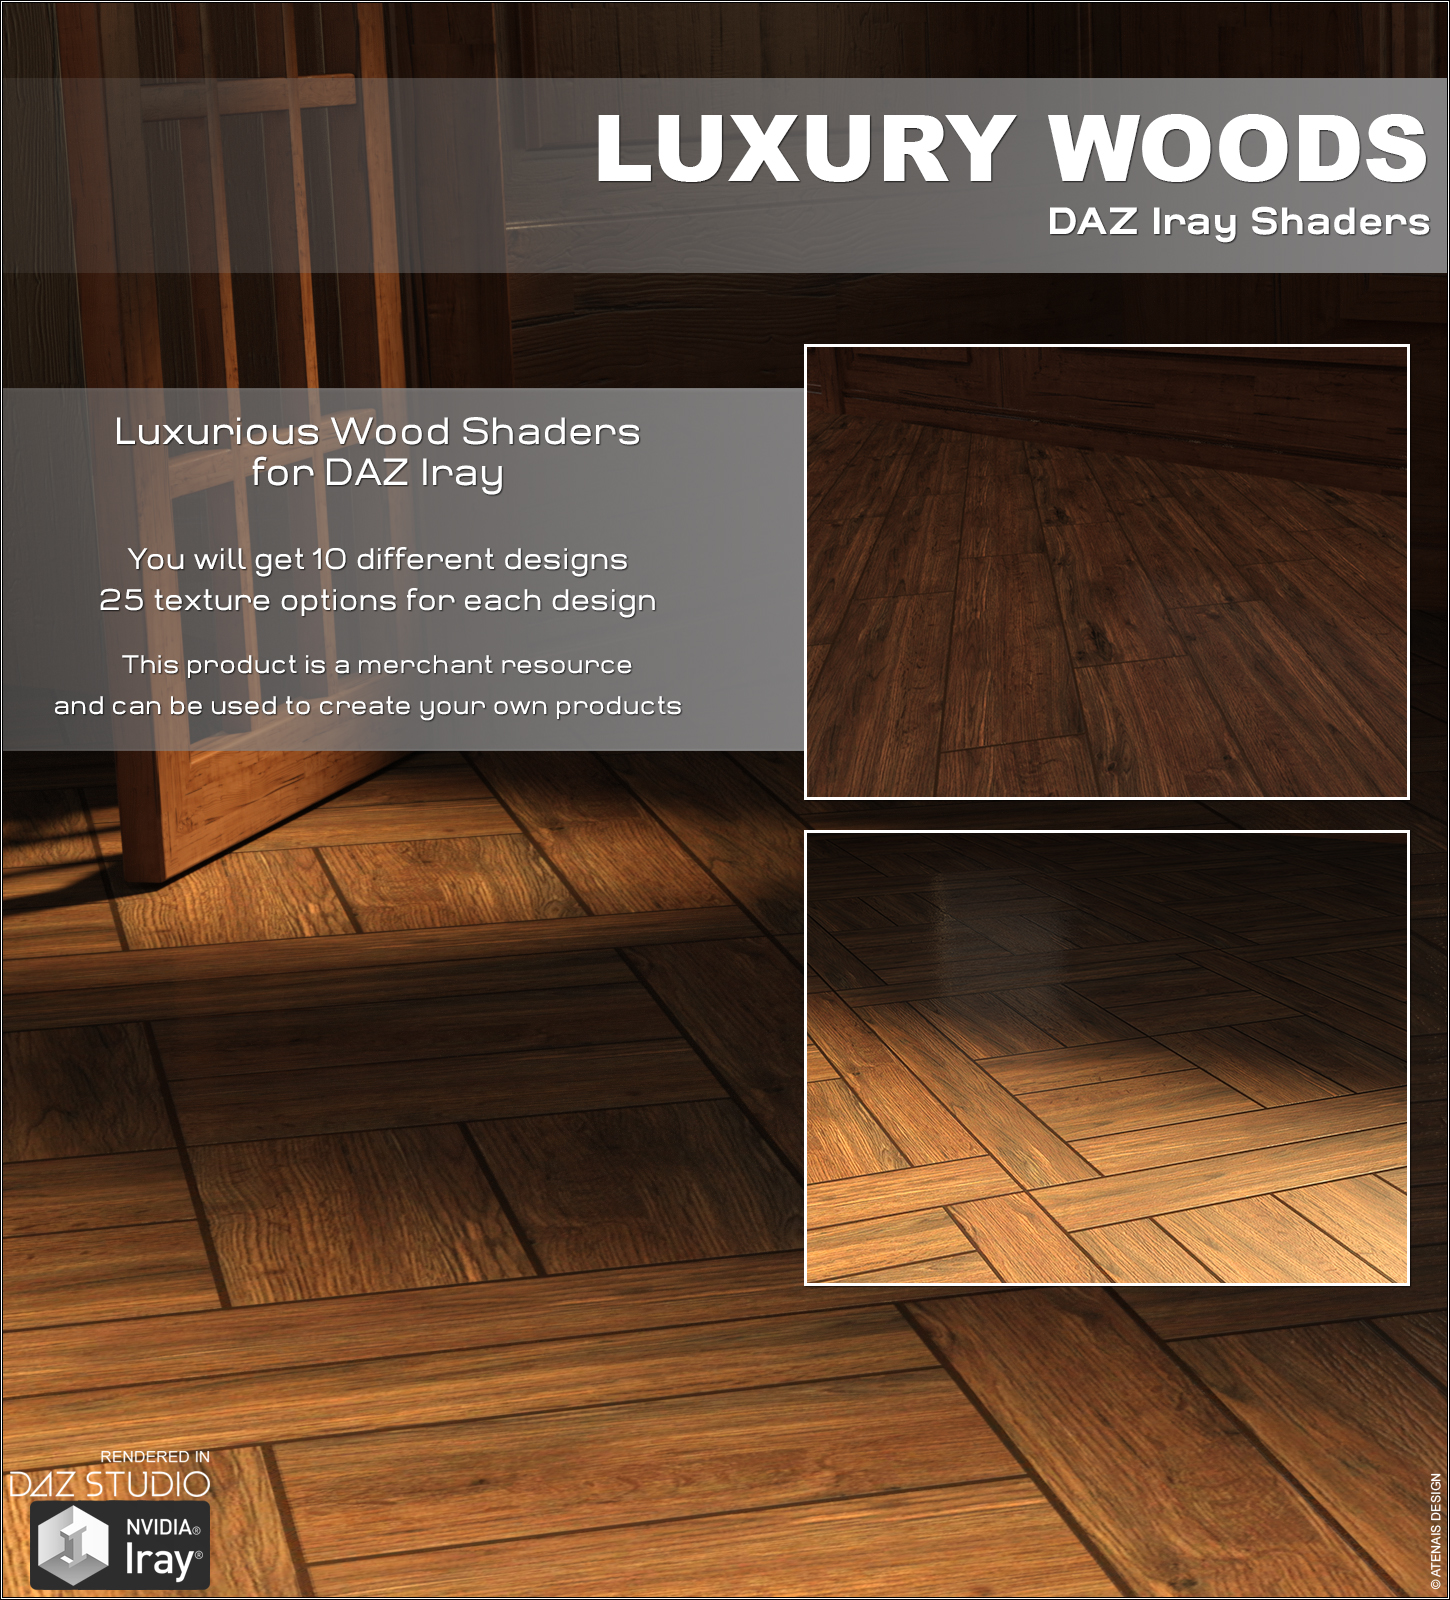 DAZ Iray - Luxury Woods